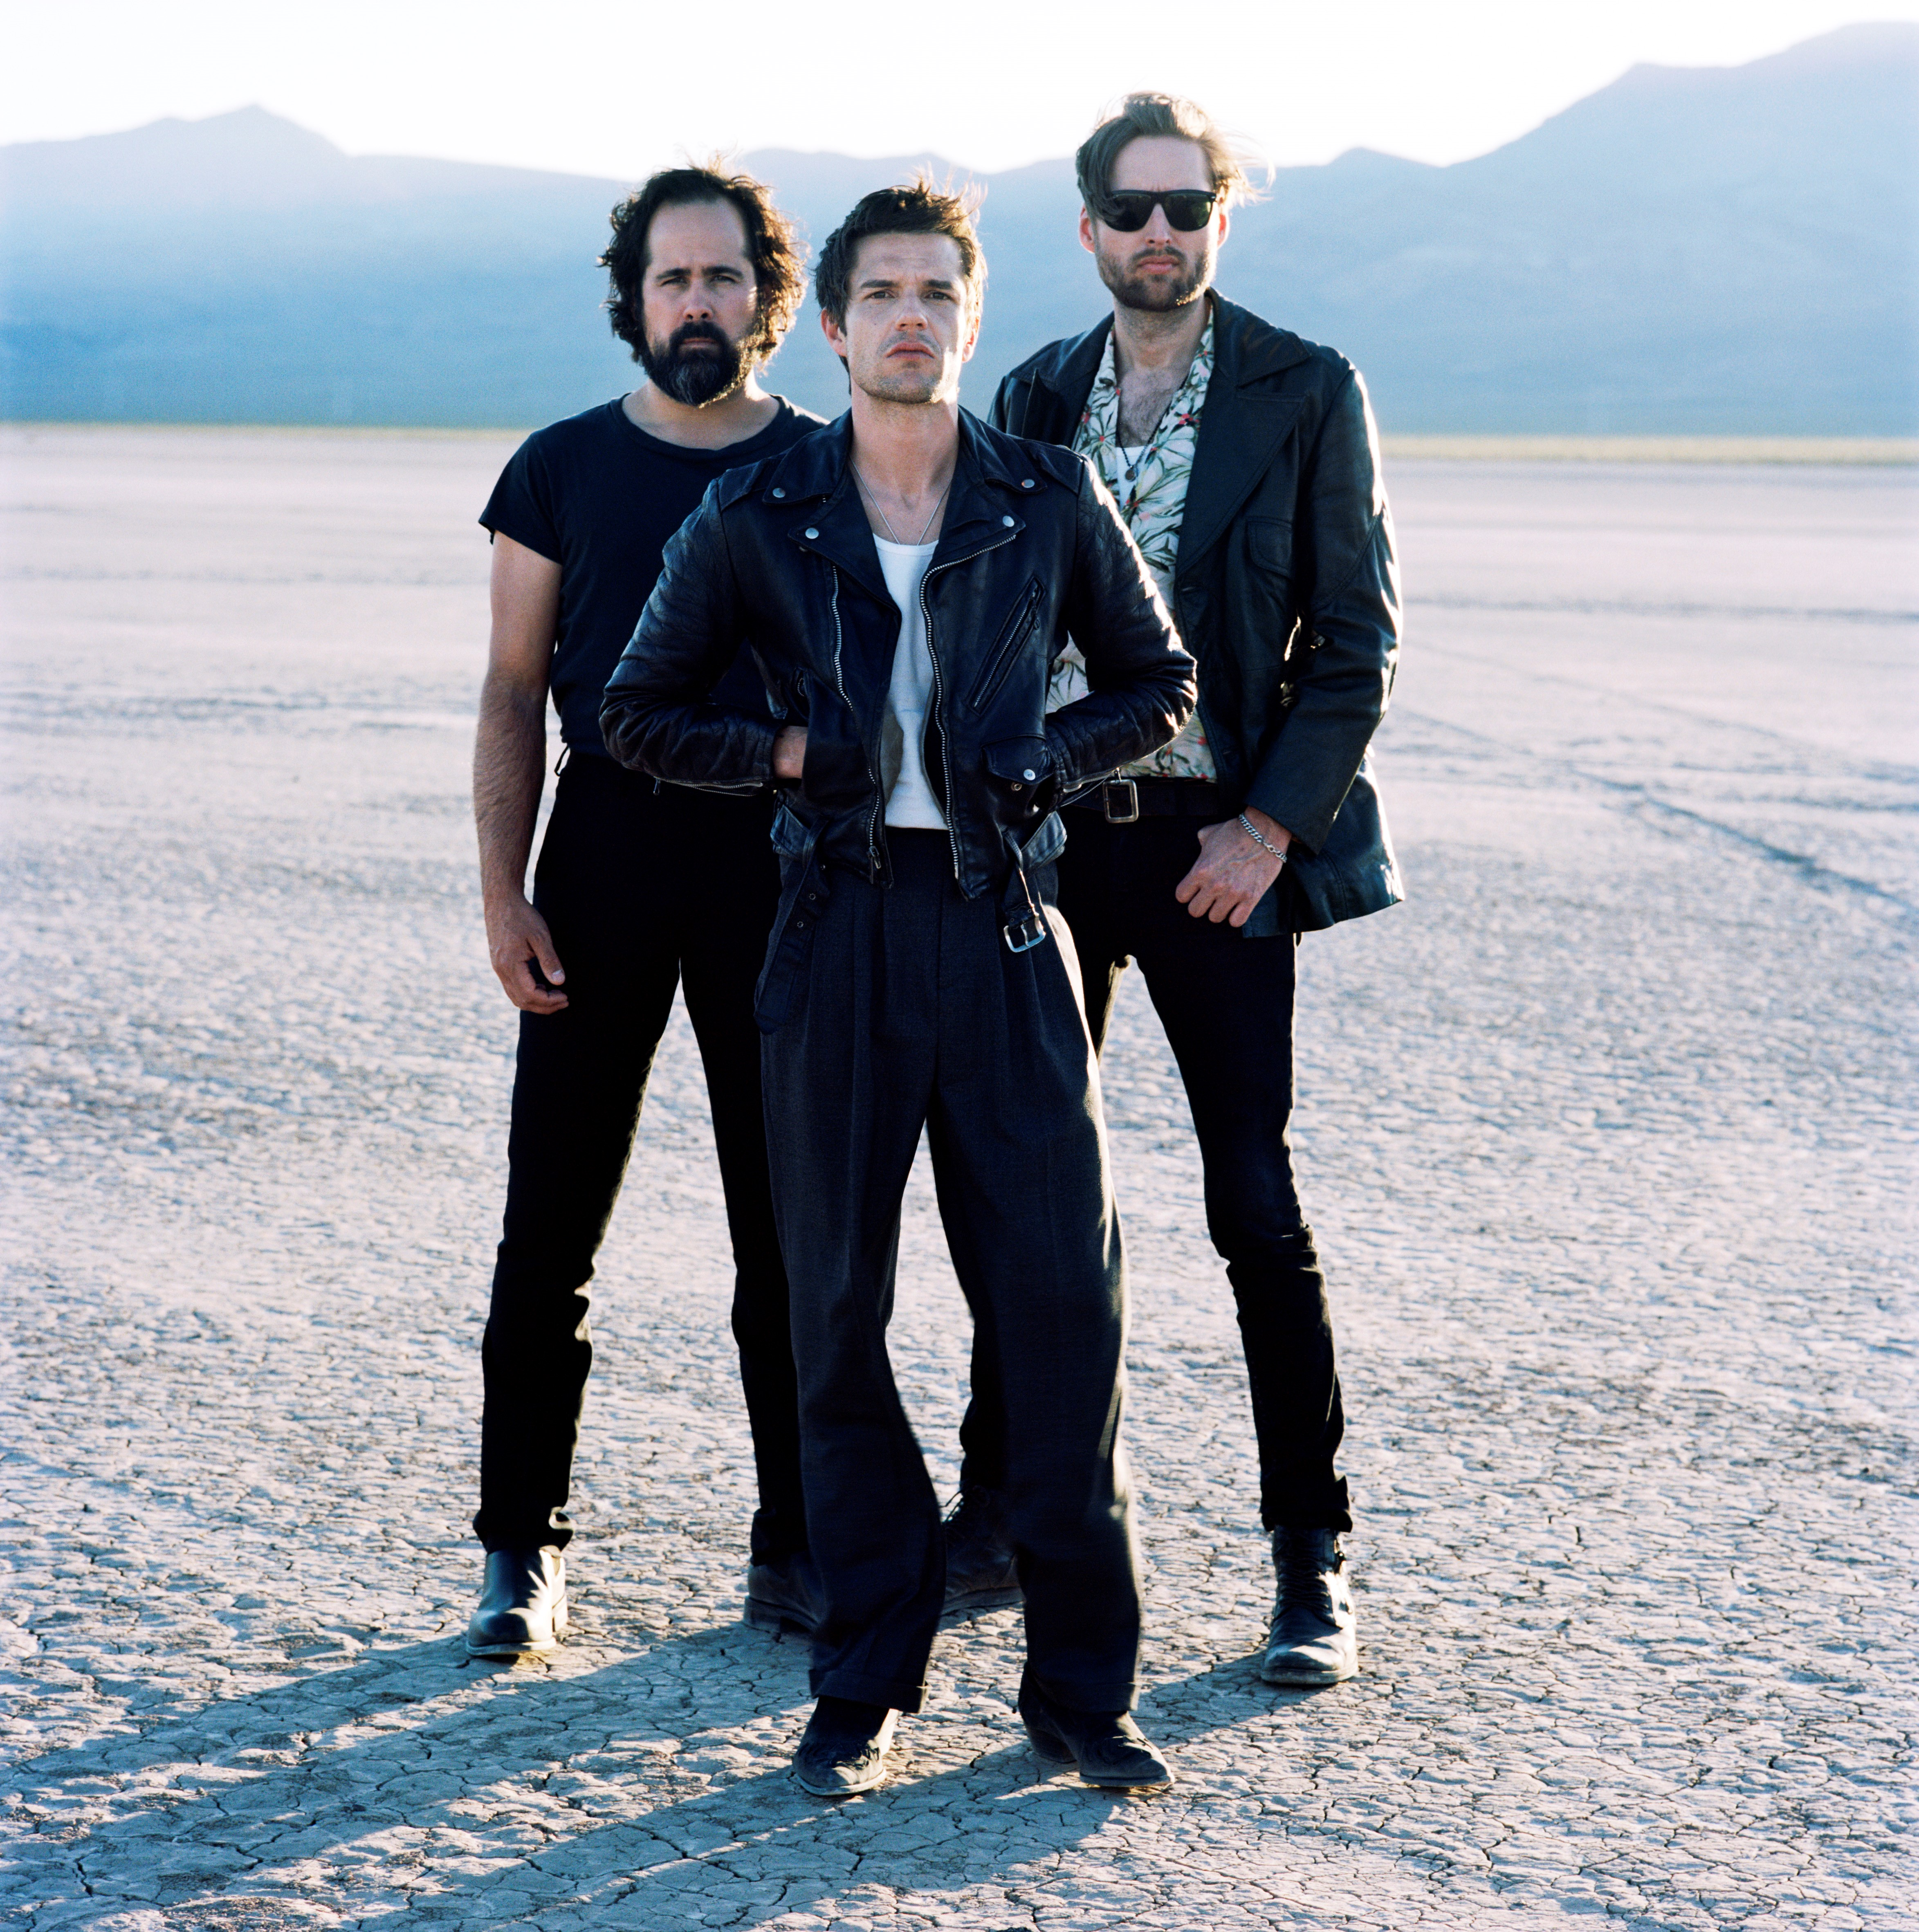 the serial killer of brisbane Tickets and rsvp information for the killers's upcoming concert at brisbane entertainment centre in boondall on apr 06, 2018.